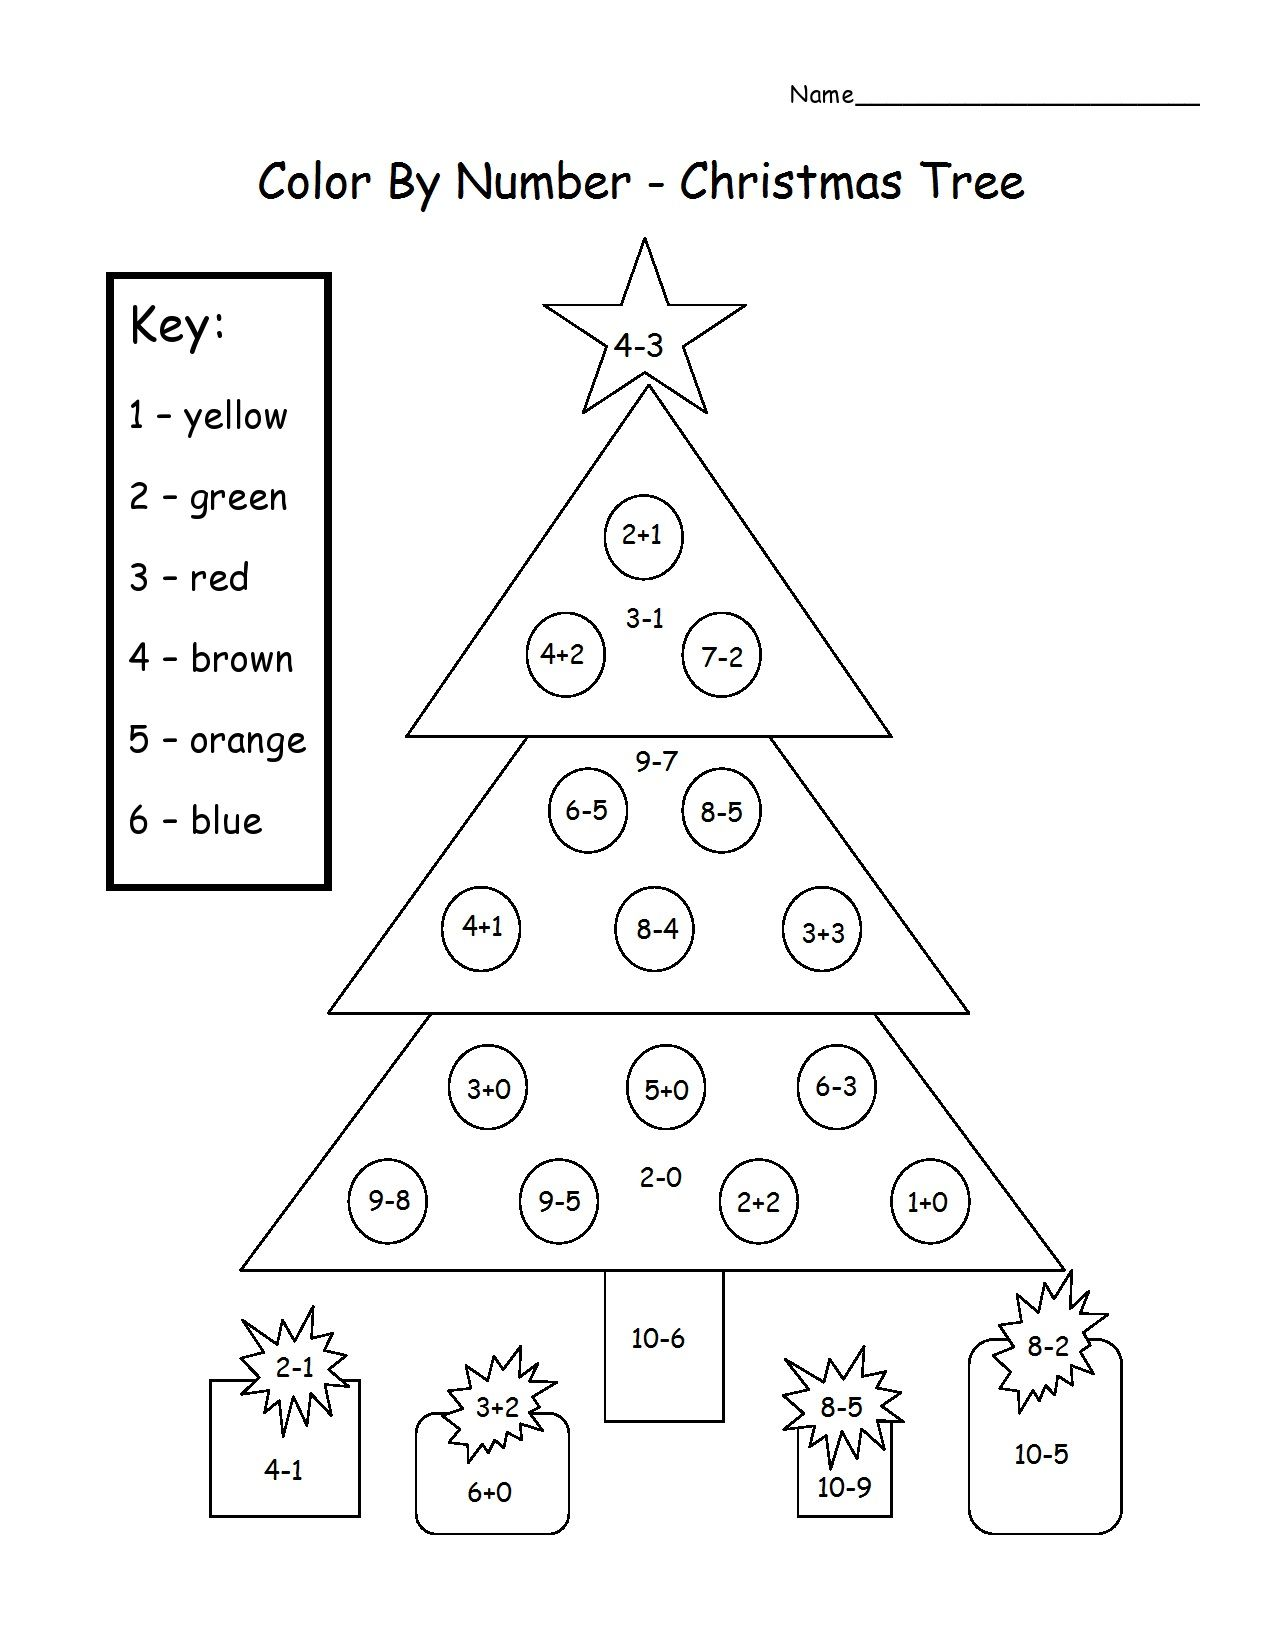 Christmas Tree Color By Number Add Subtract Printable – Santa Math Worksheets